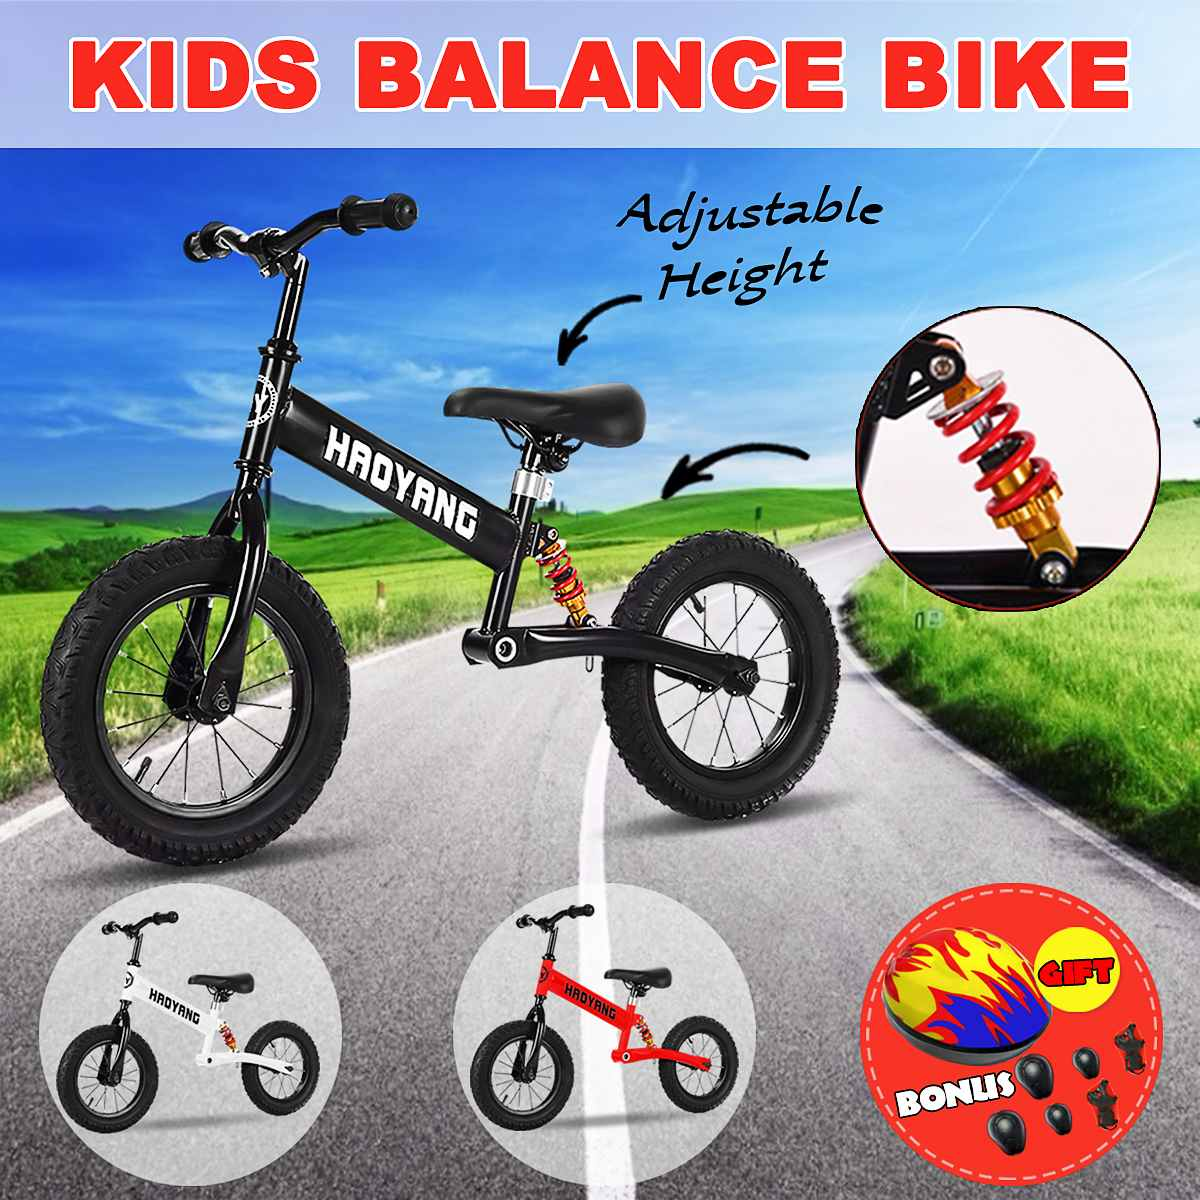 Baby Walker Balance Bike Solid Safe Children Scooter High Carbon Steel Walker Without Pedals Kids Bike With Protective GearBaby Walker Balance Bike Solid Safe Children Scooter High Carbon Steel Walker Without Pedals Kids Bike With Protective Gear